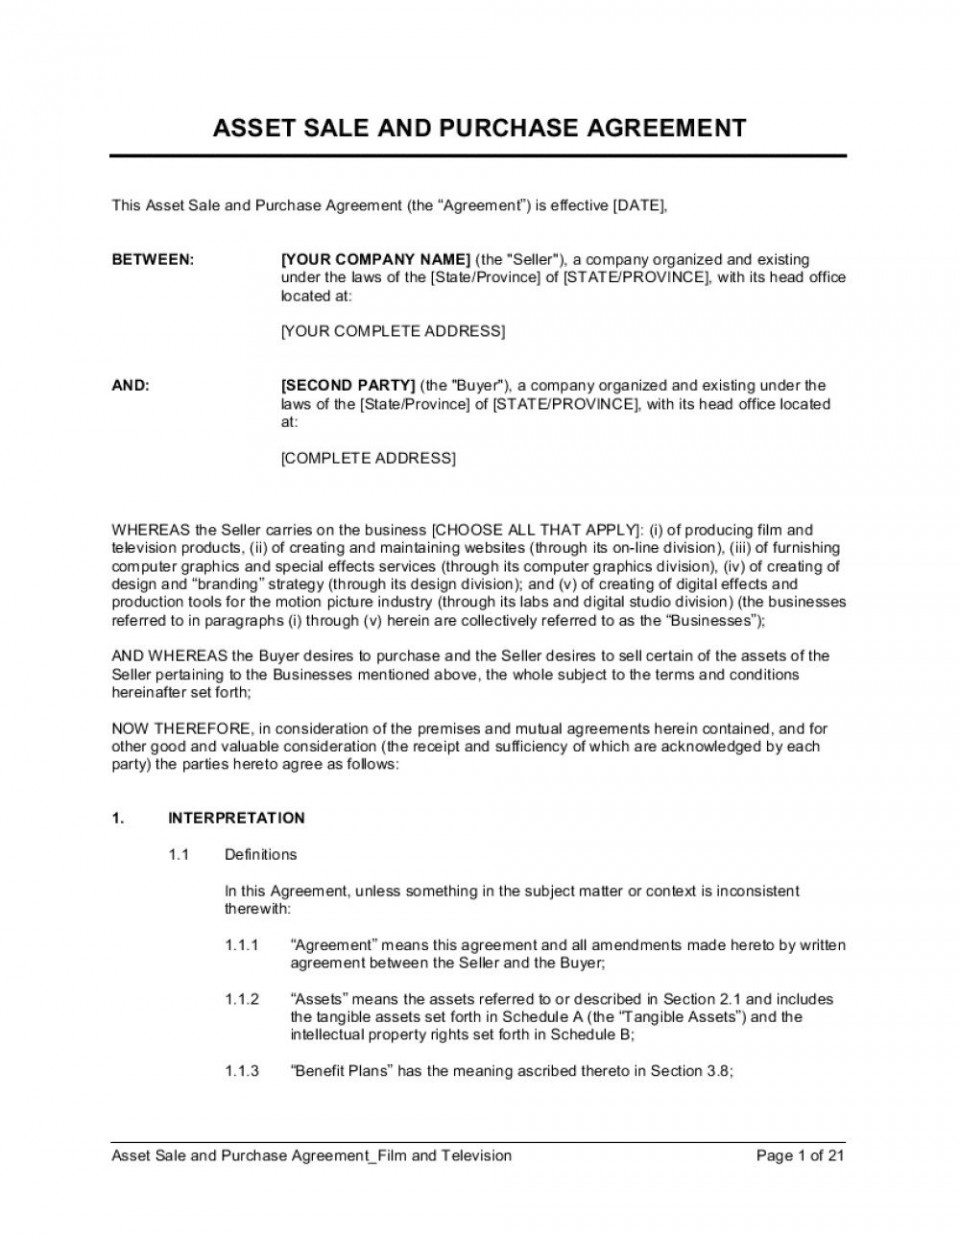 004 Remarkable Busines Sale Agreement Template Image  Western Australia Free Uk Download South Africa960